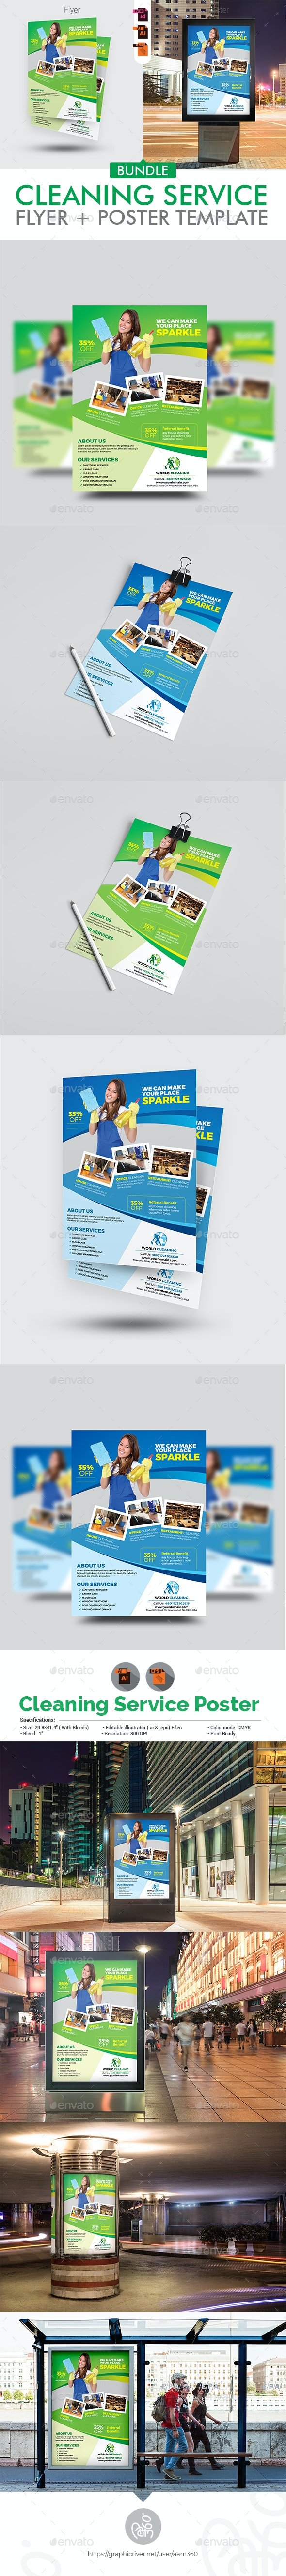 Cleaning Services Flyer With Poster Bundle - Corporate Flyers